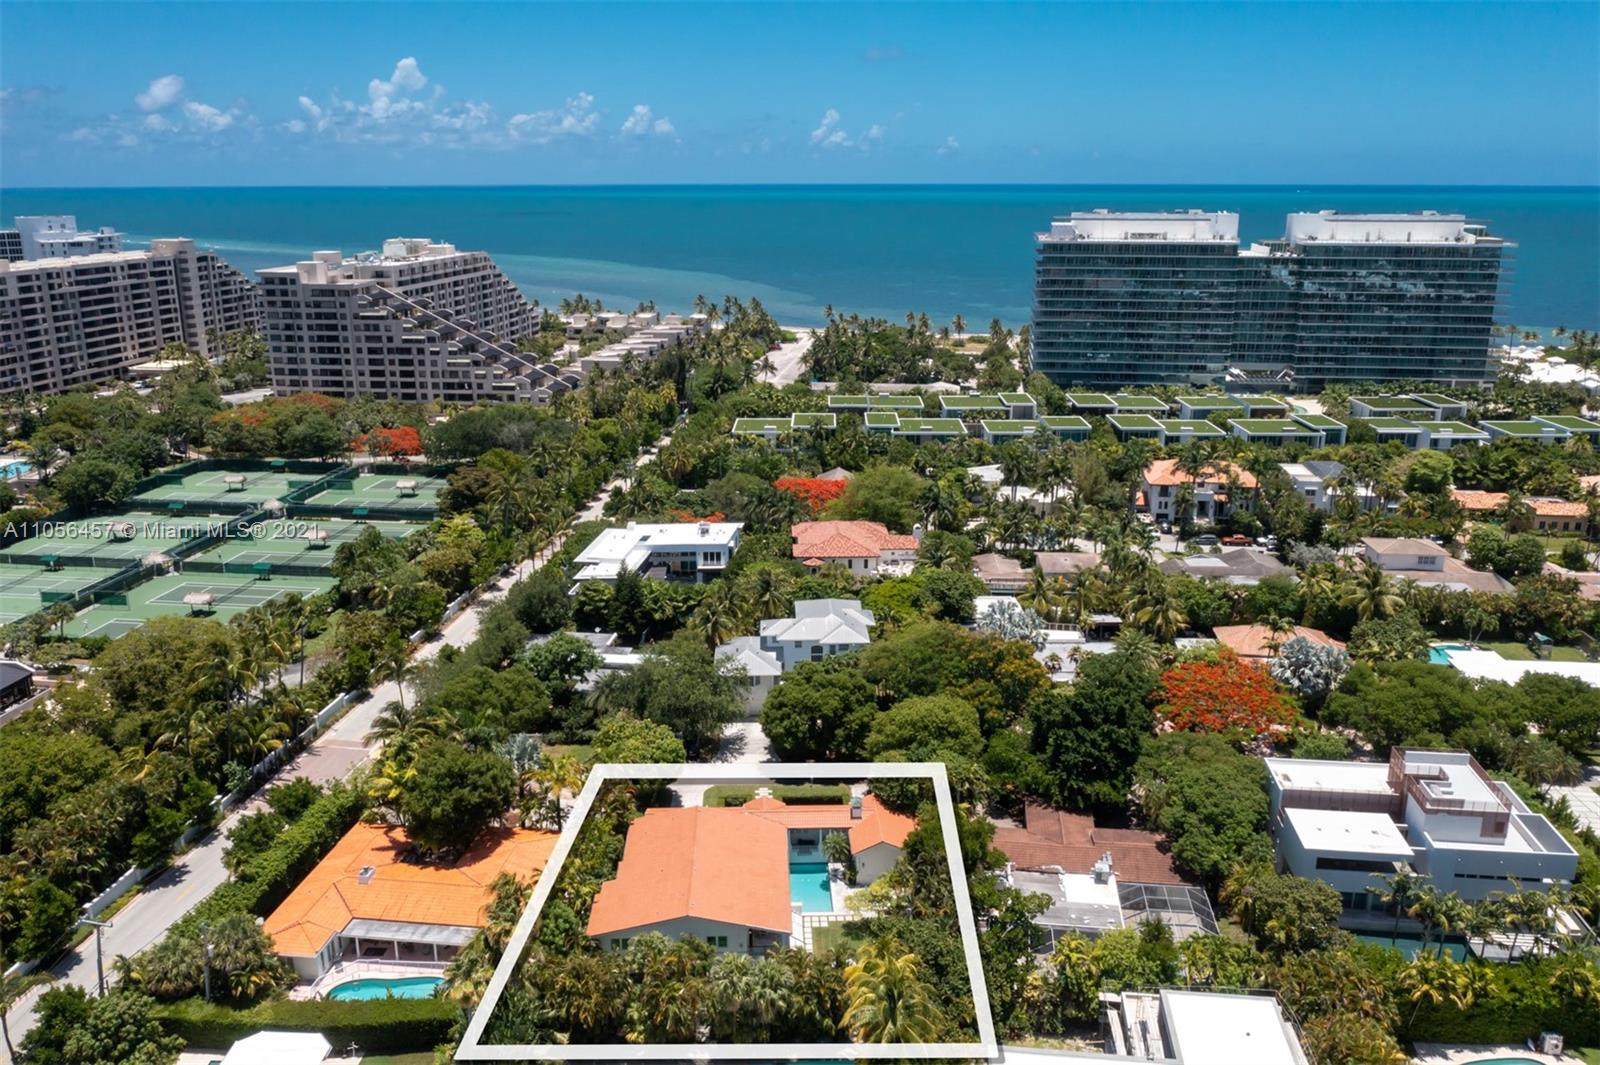 320 Pacific Rd, Key Biscayne, Florida 33149